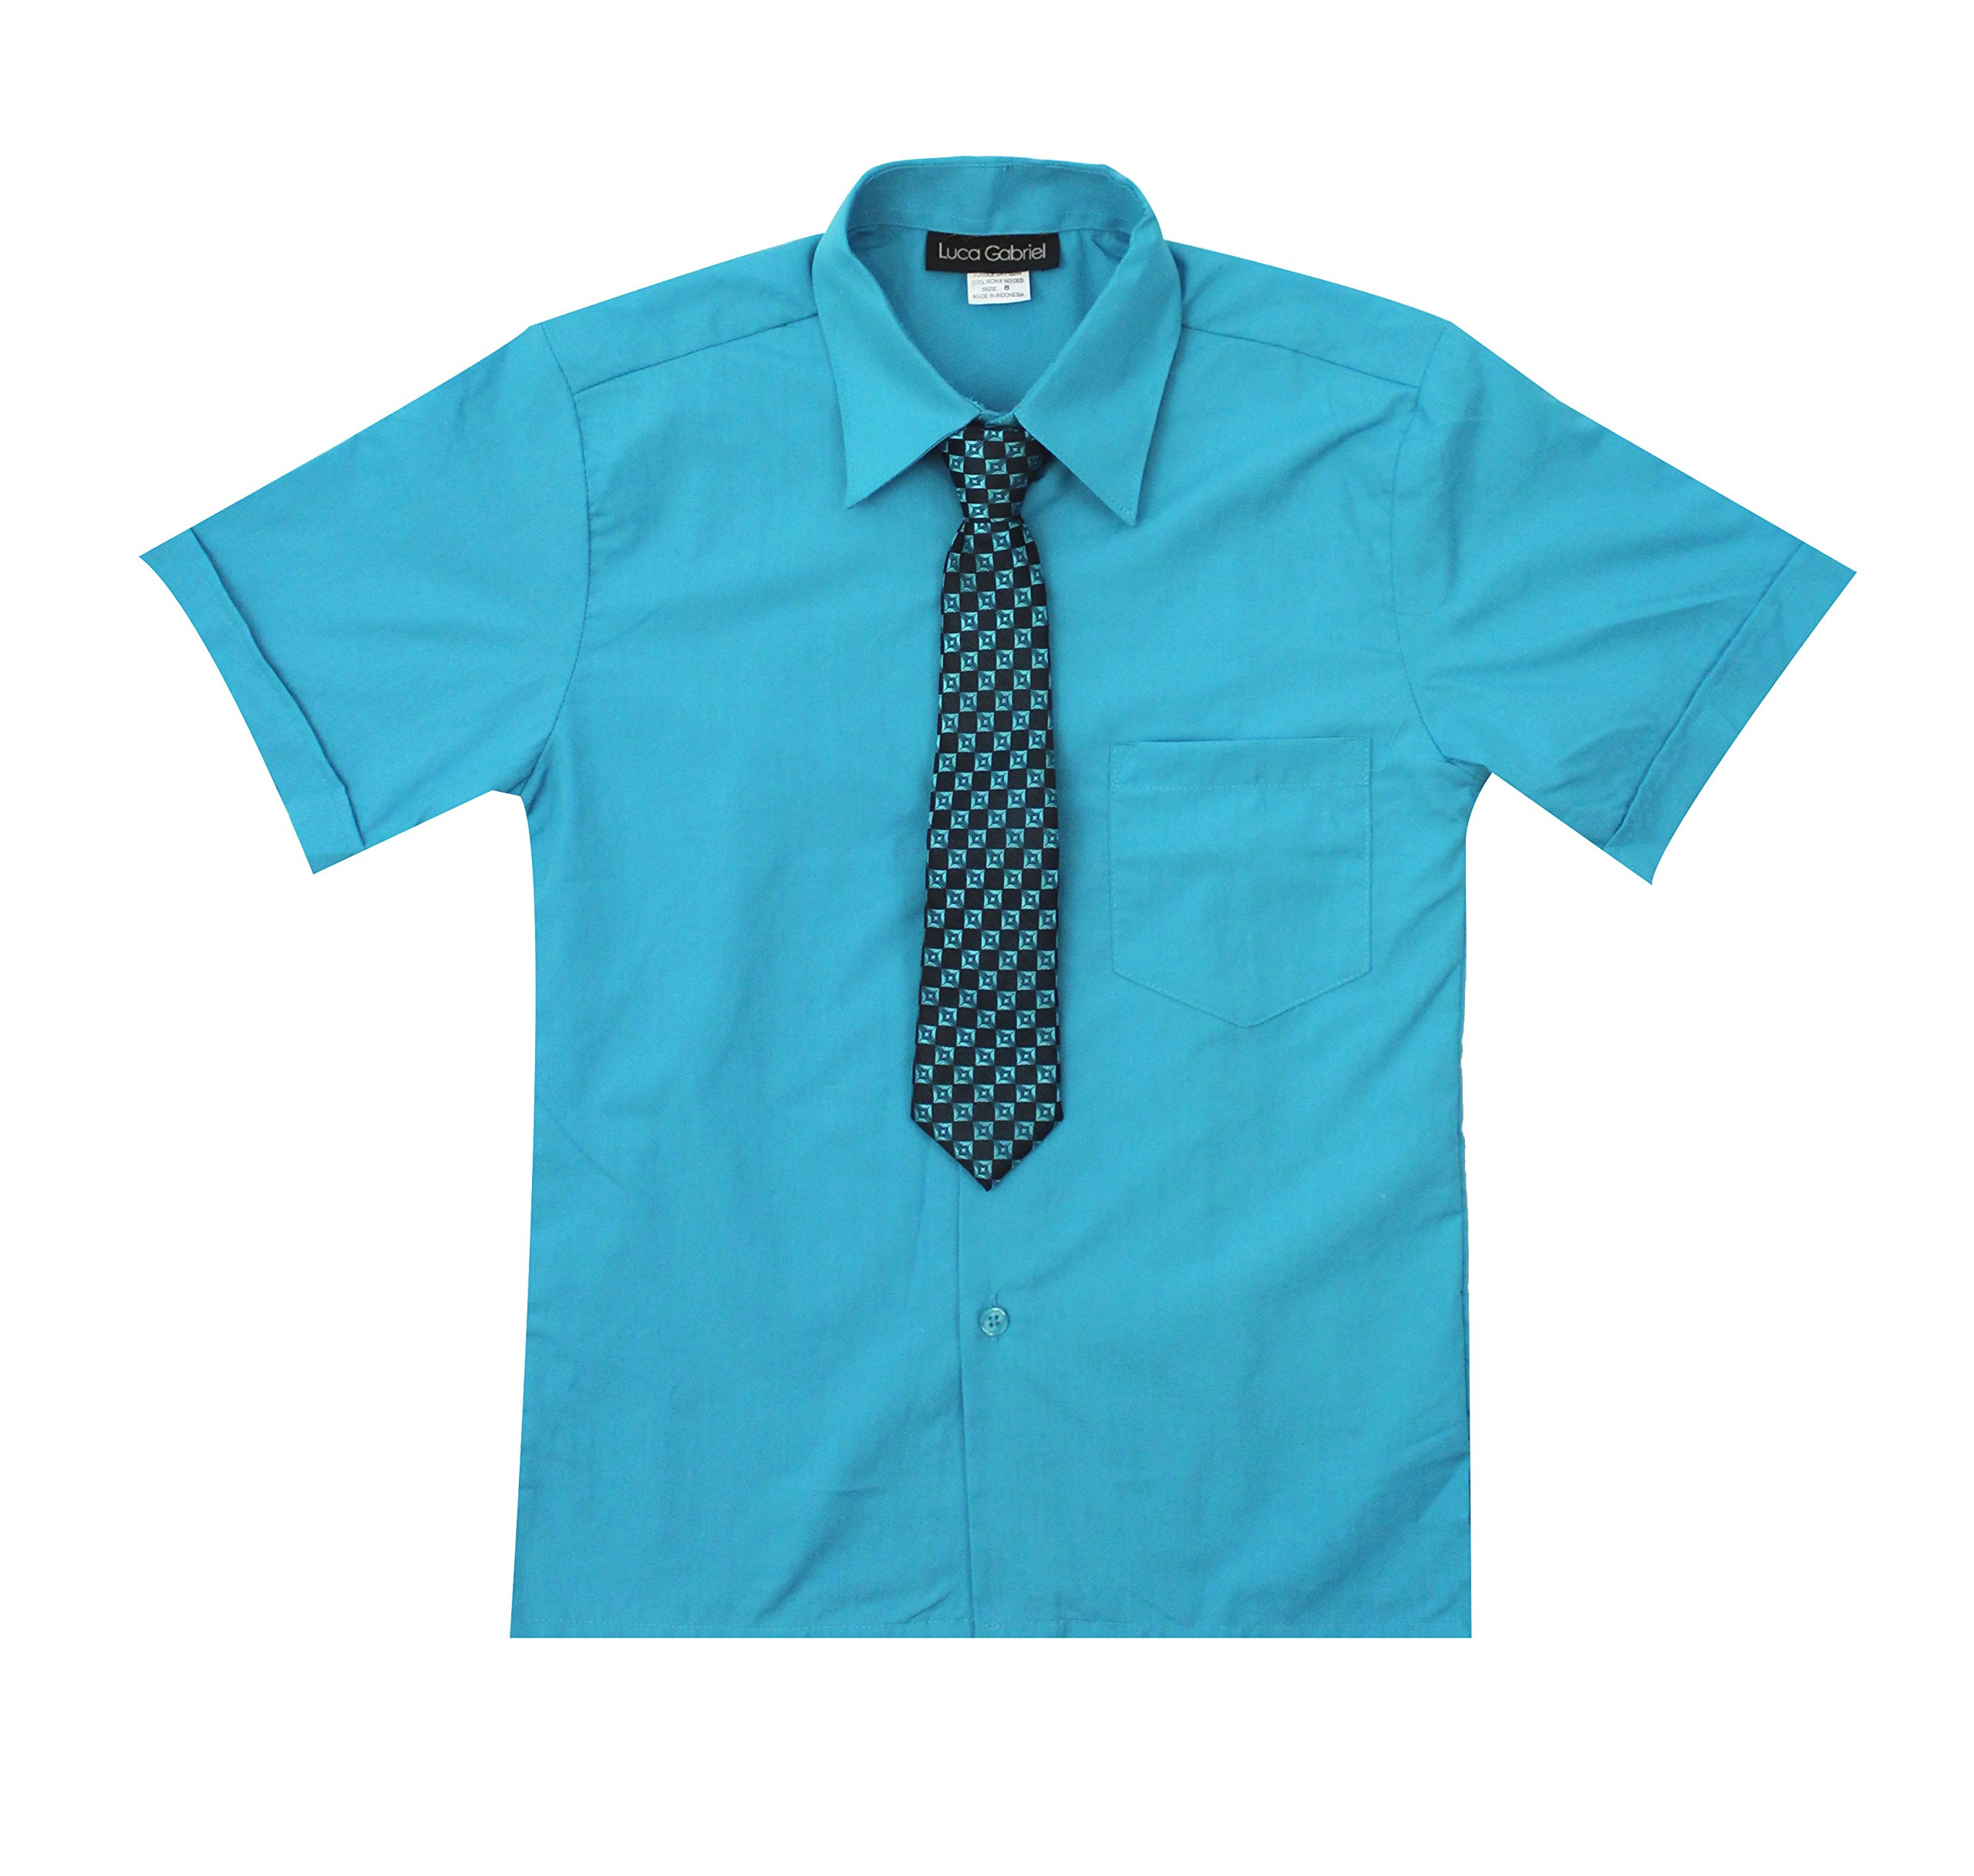 Luca Gabriel Toddler Boy's Short Sleeve Formal Button Down Dress Shirt & Tie Set - Turquoise Size 8